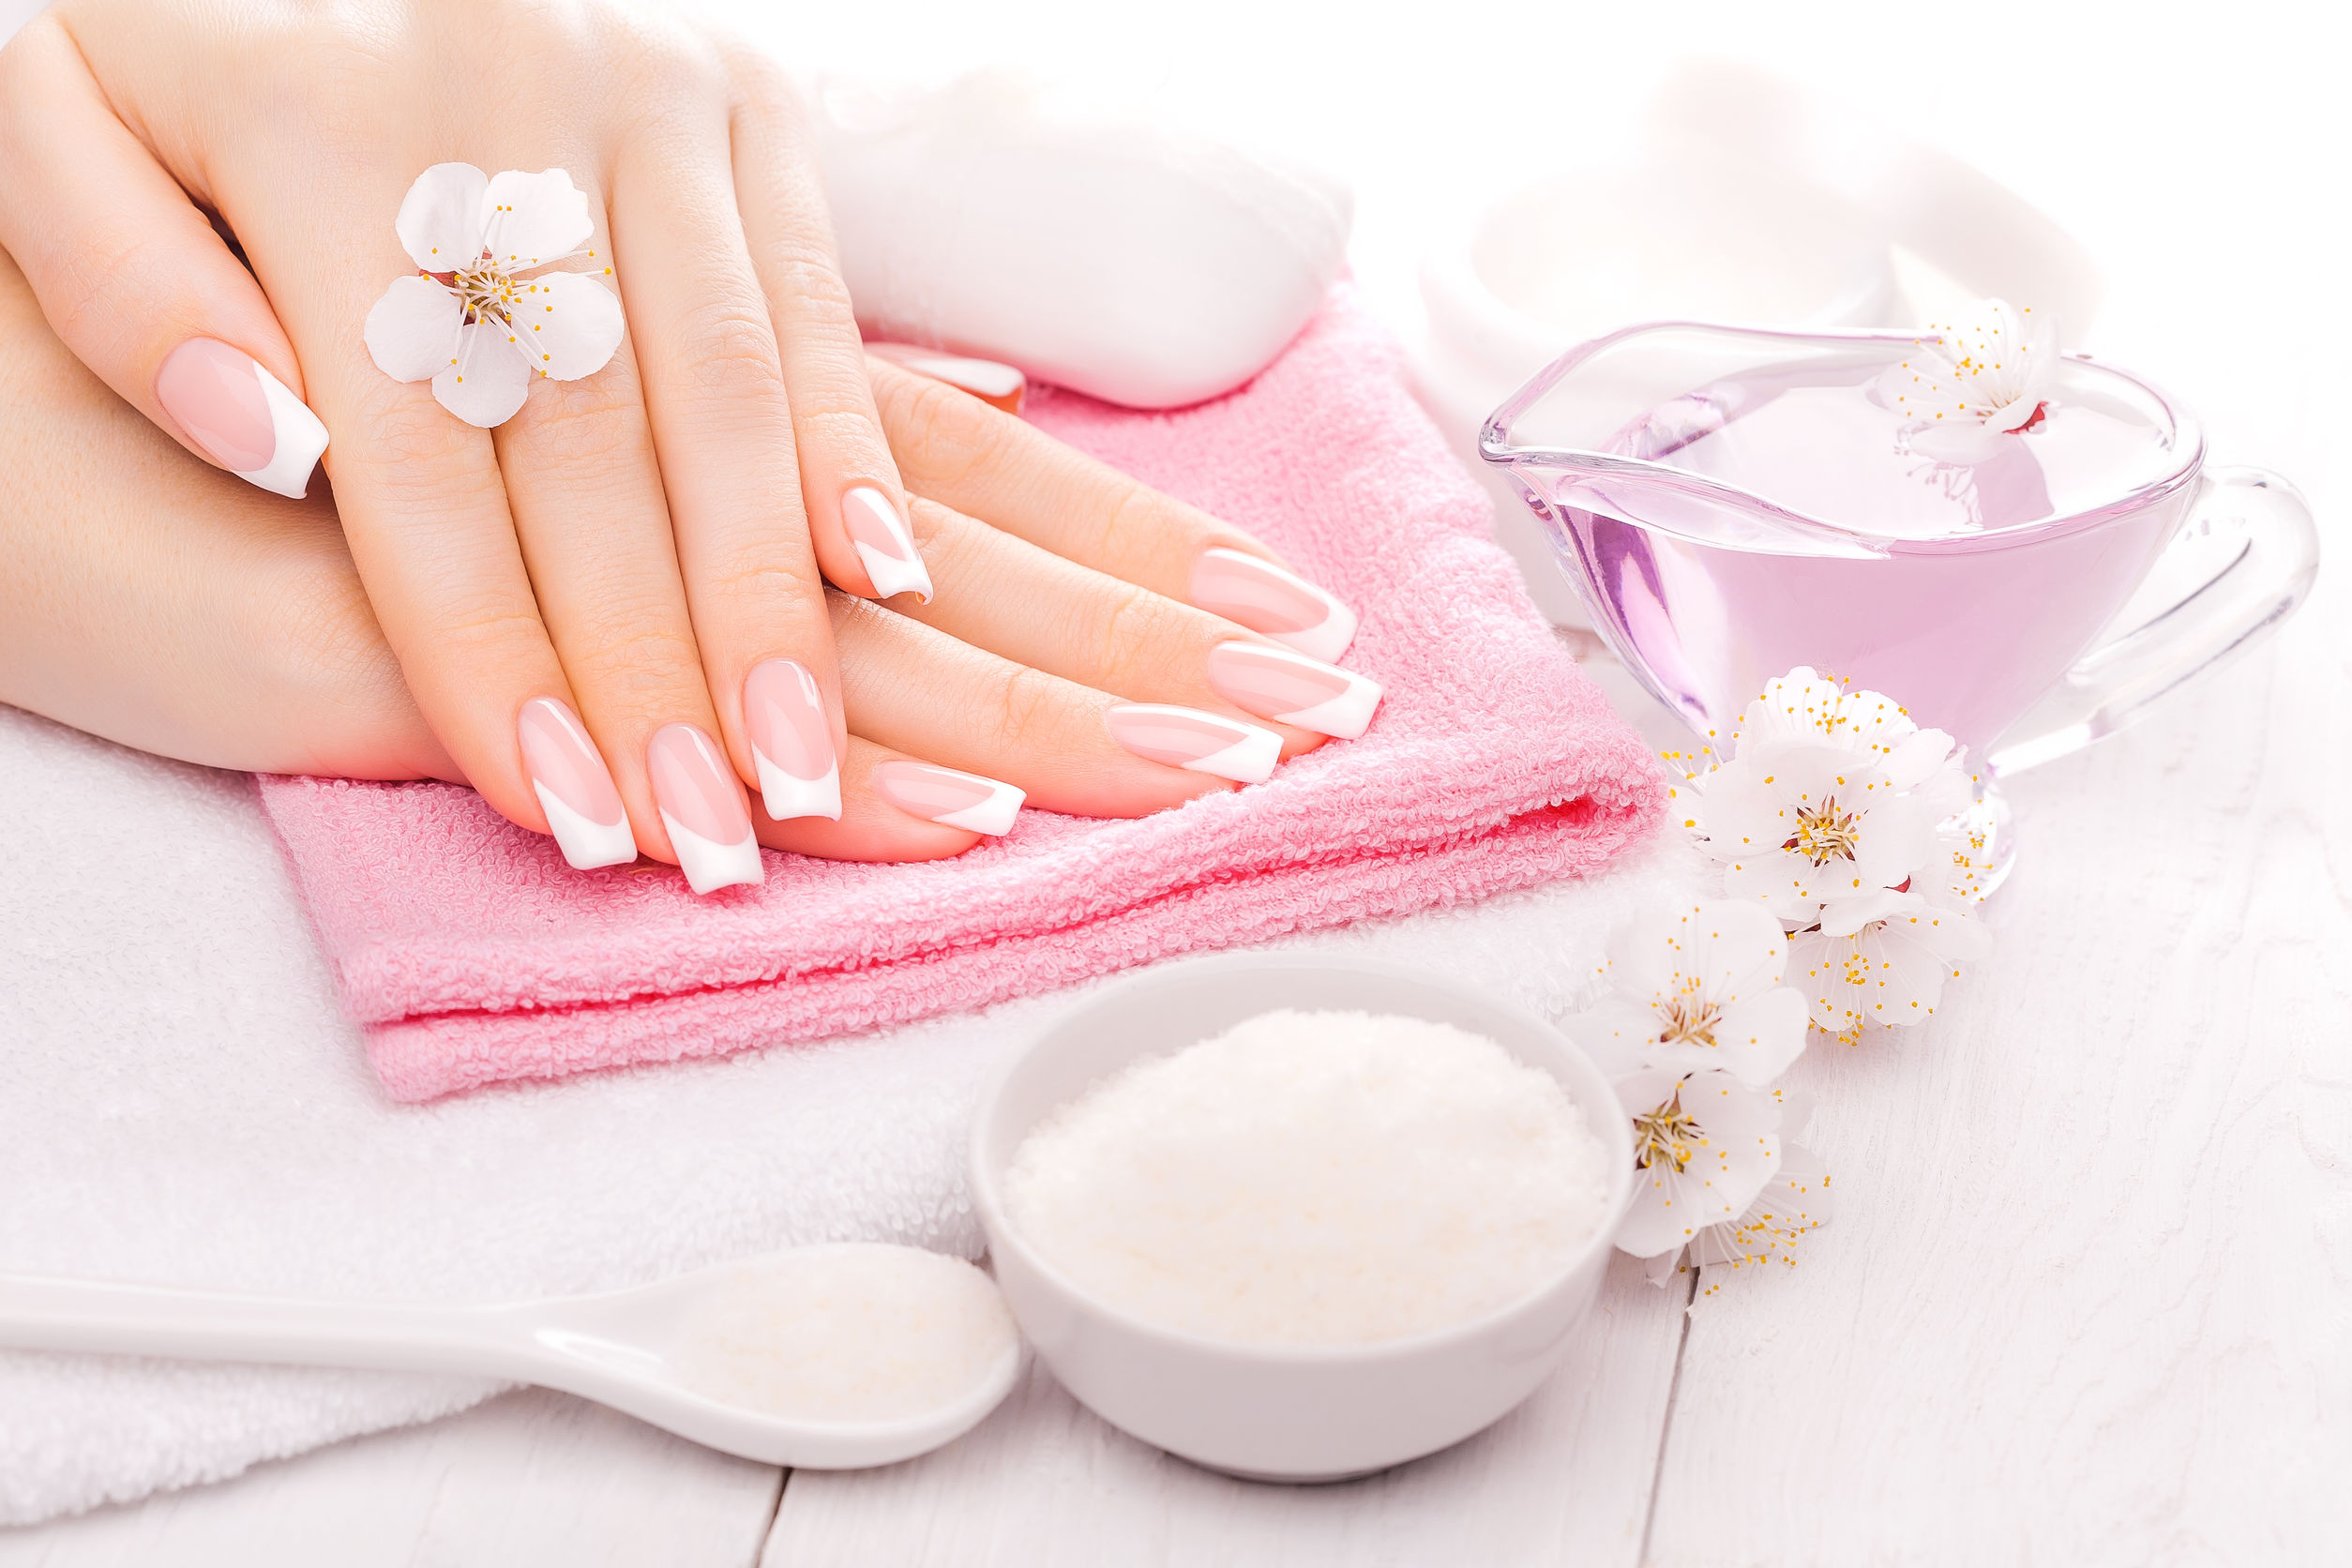 39600576 - french manicure with essential oils, apricot flowers. spa